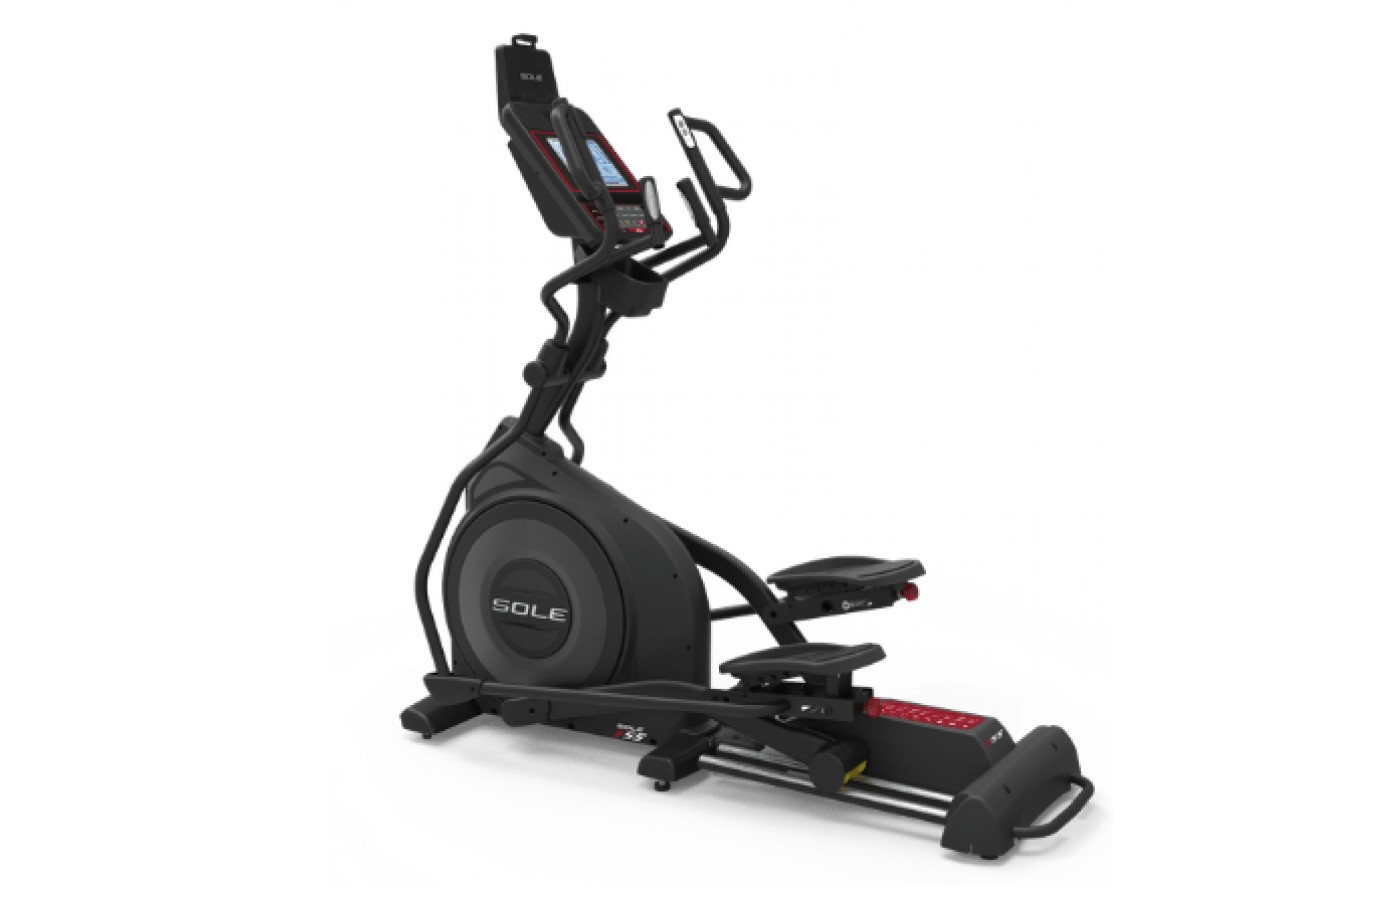 The Sole Fitness E35 elliptical trainer is compact.